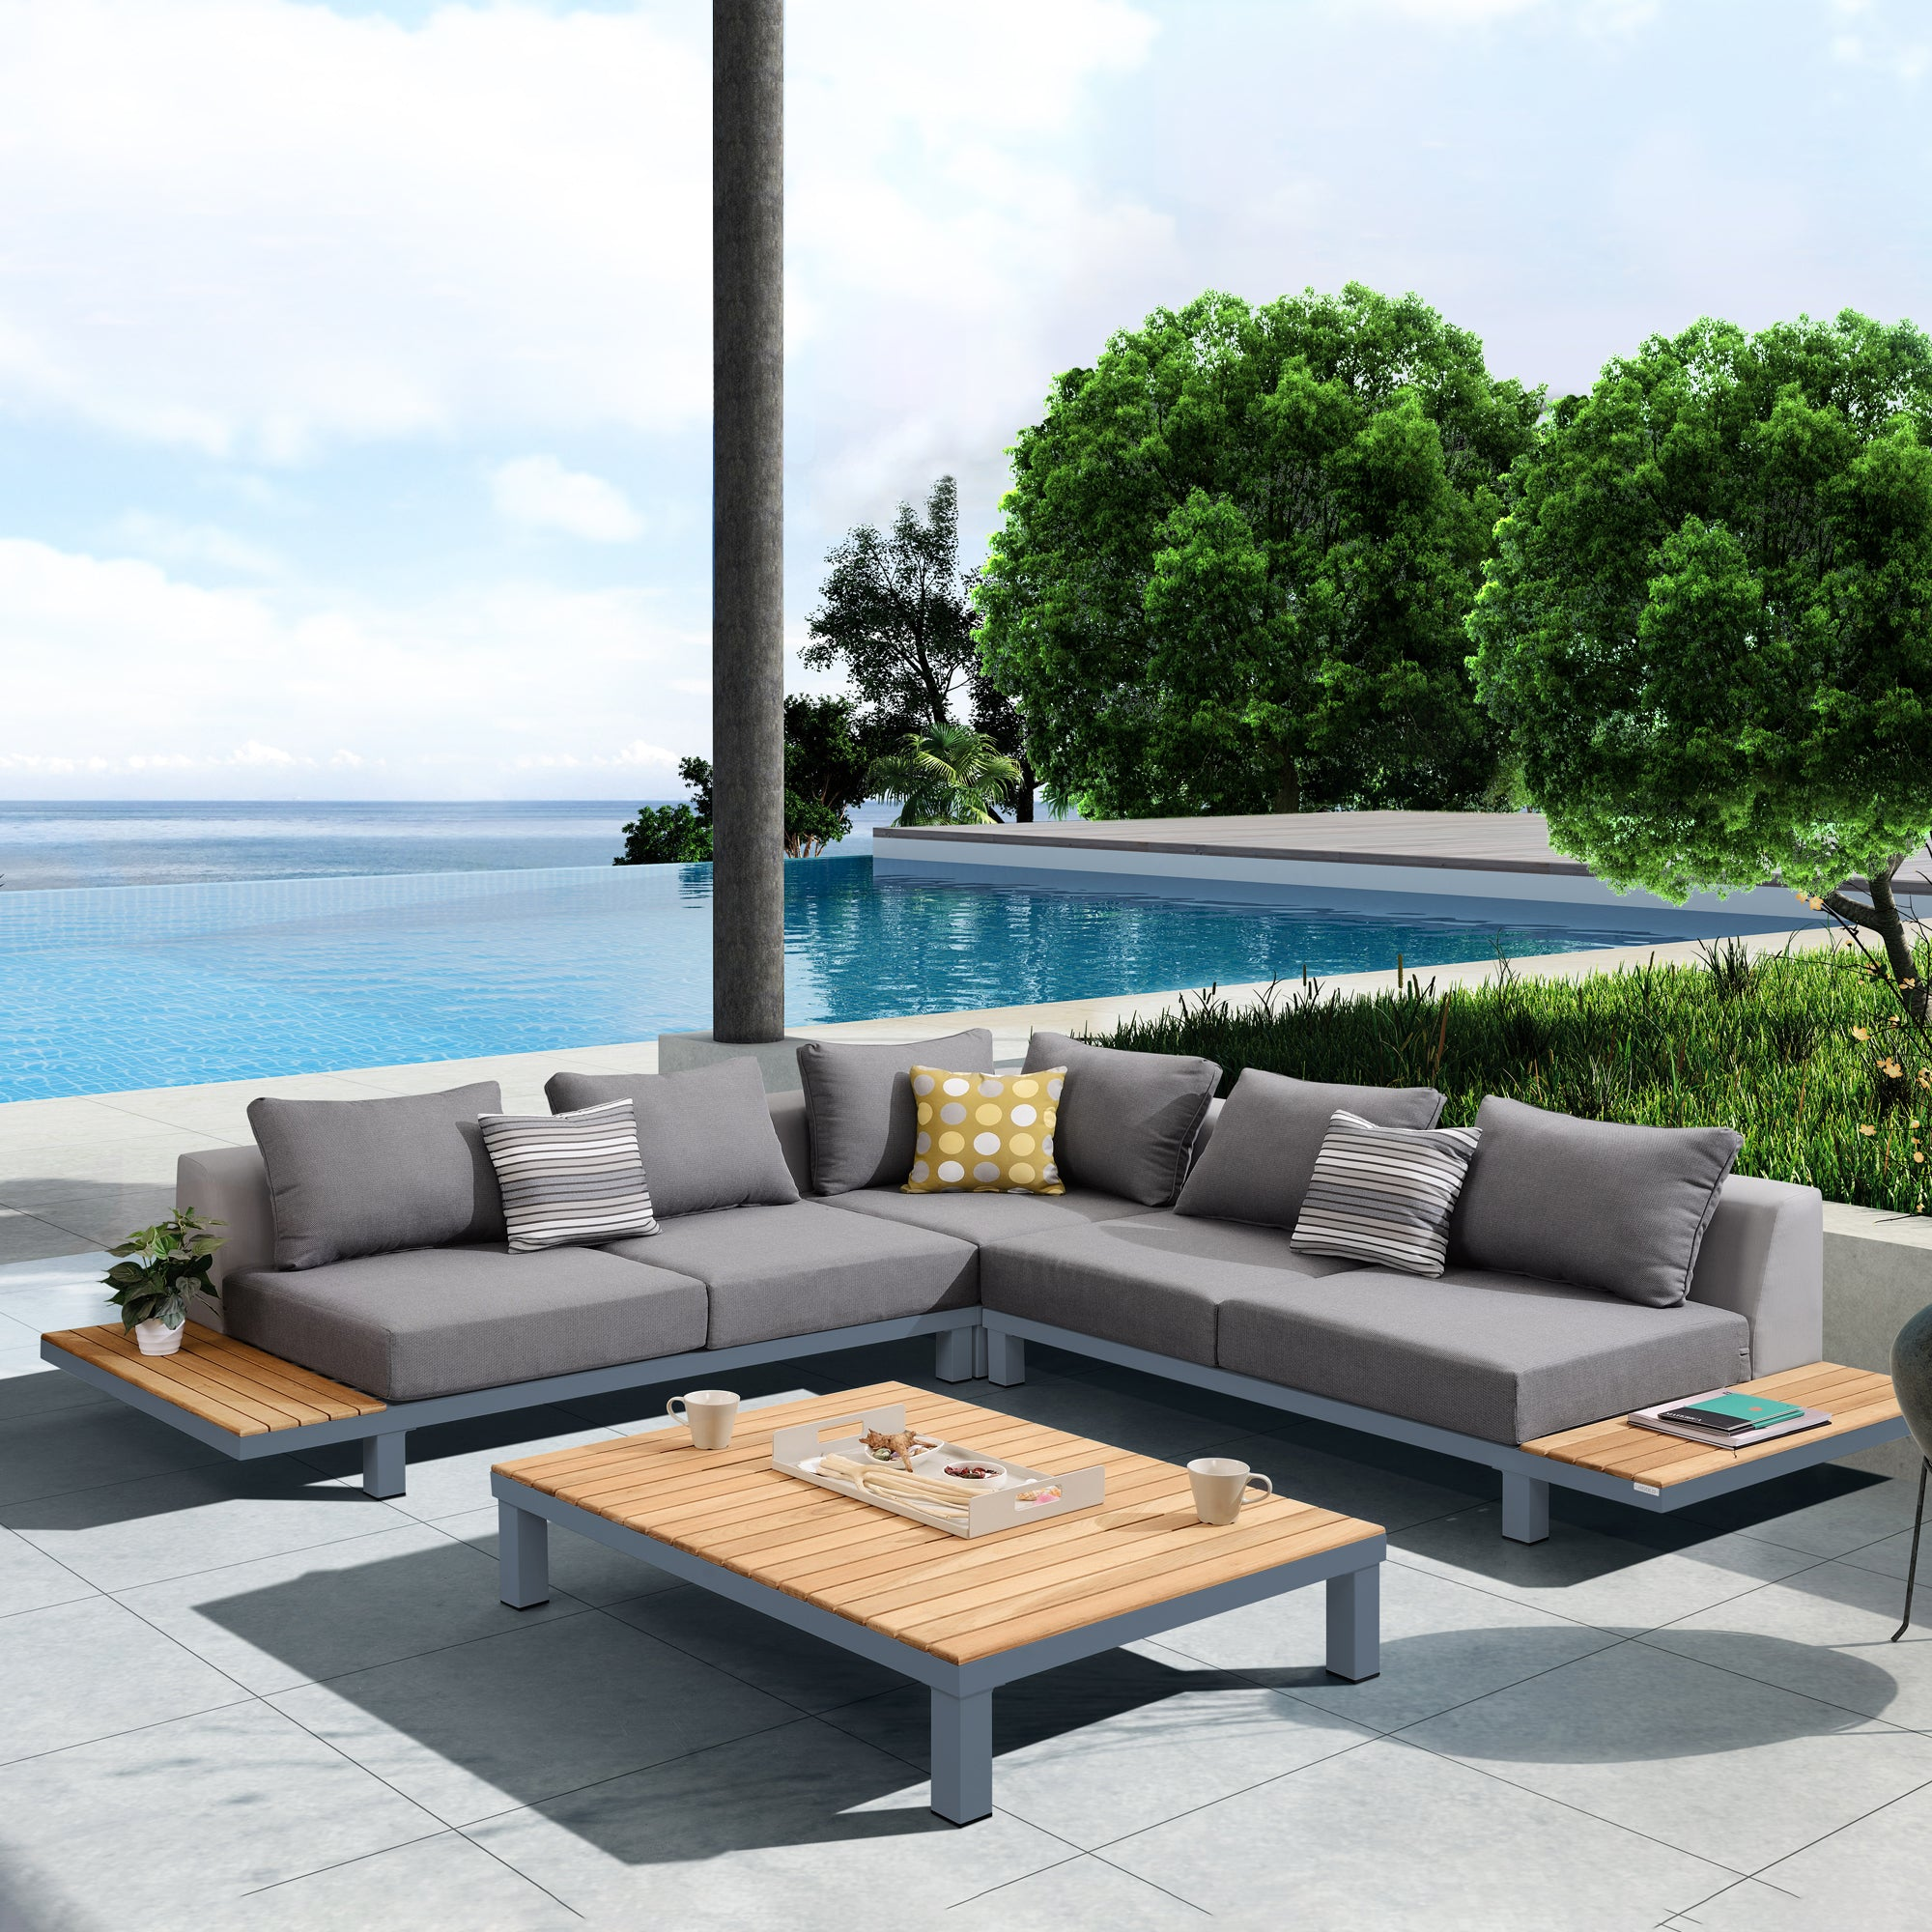 Outdoor Sectional Set 443 Product Photo